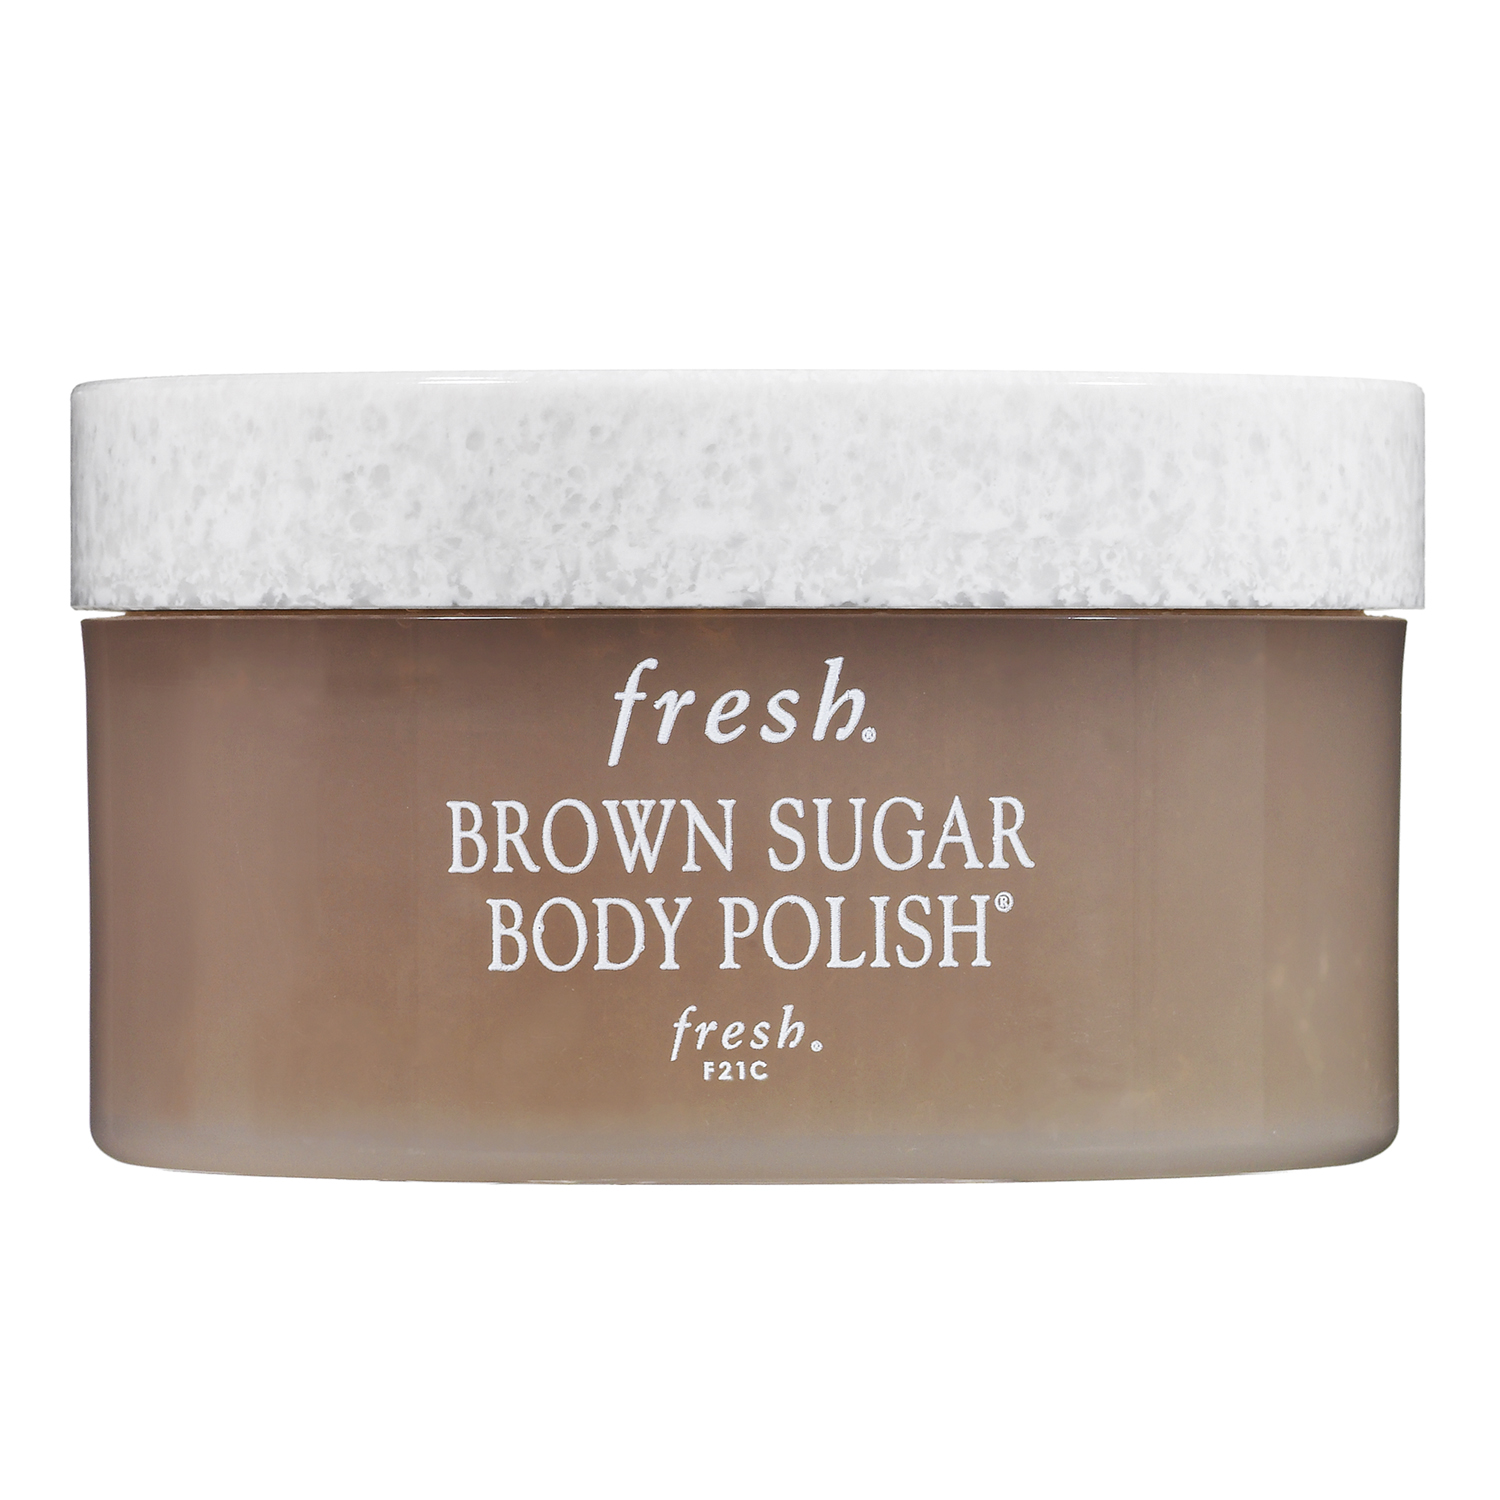 BROWN SUGAR BODY POLISH EXFOLIATOR 200GR